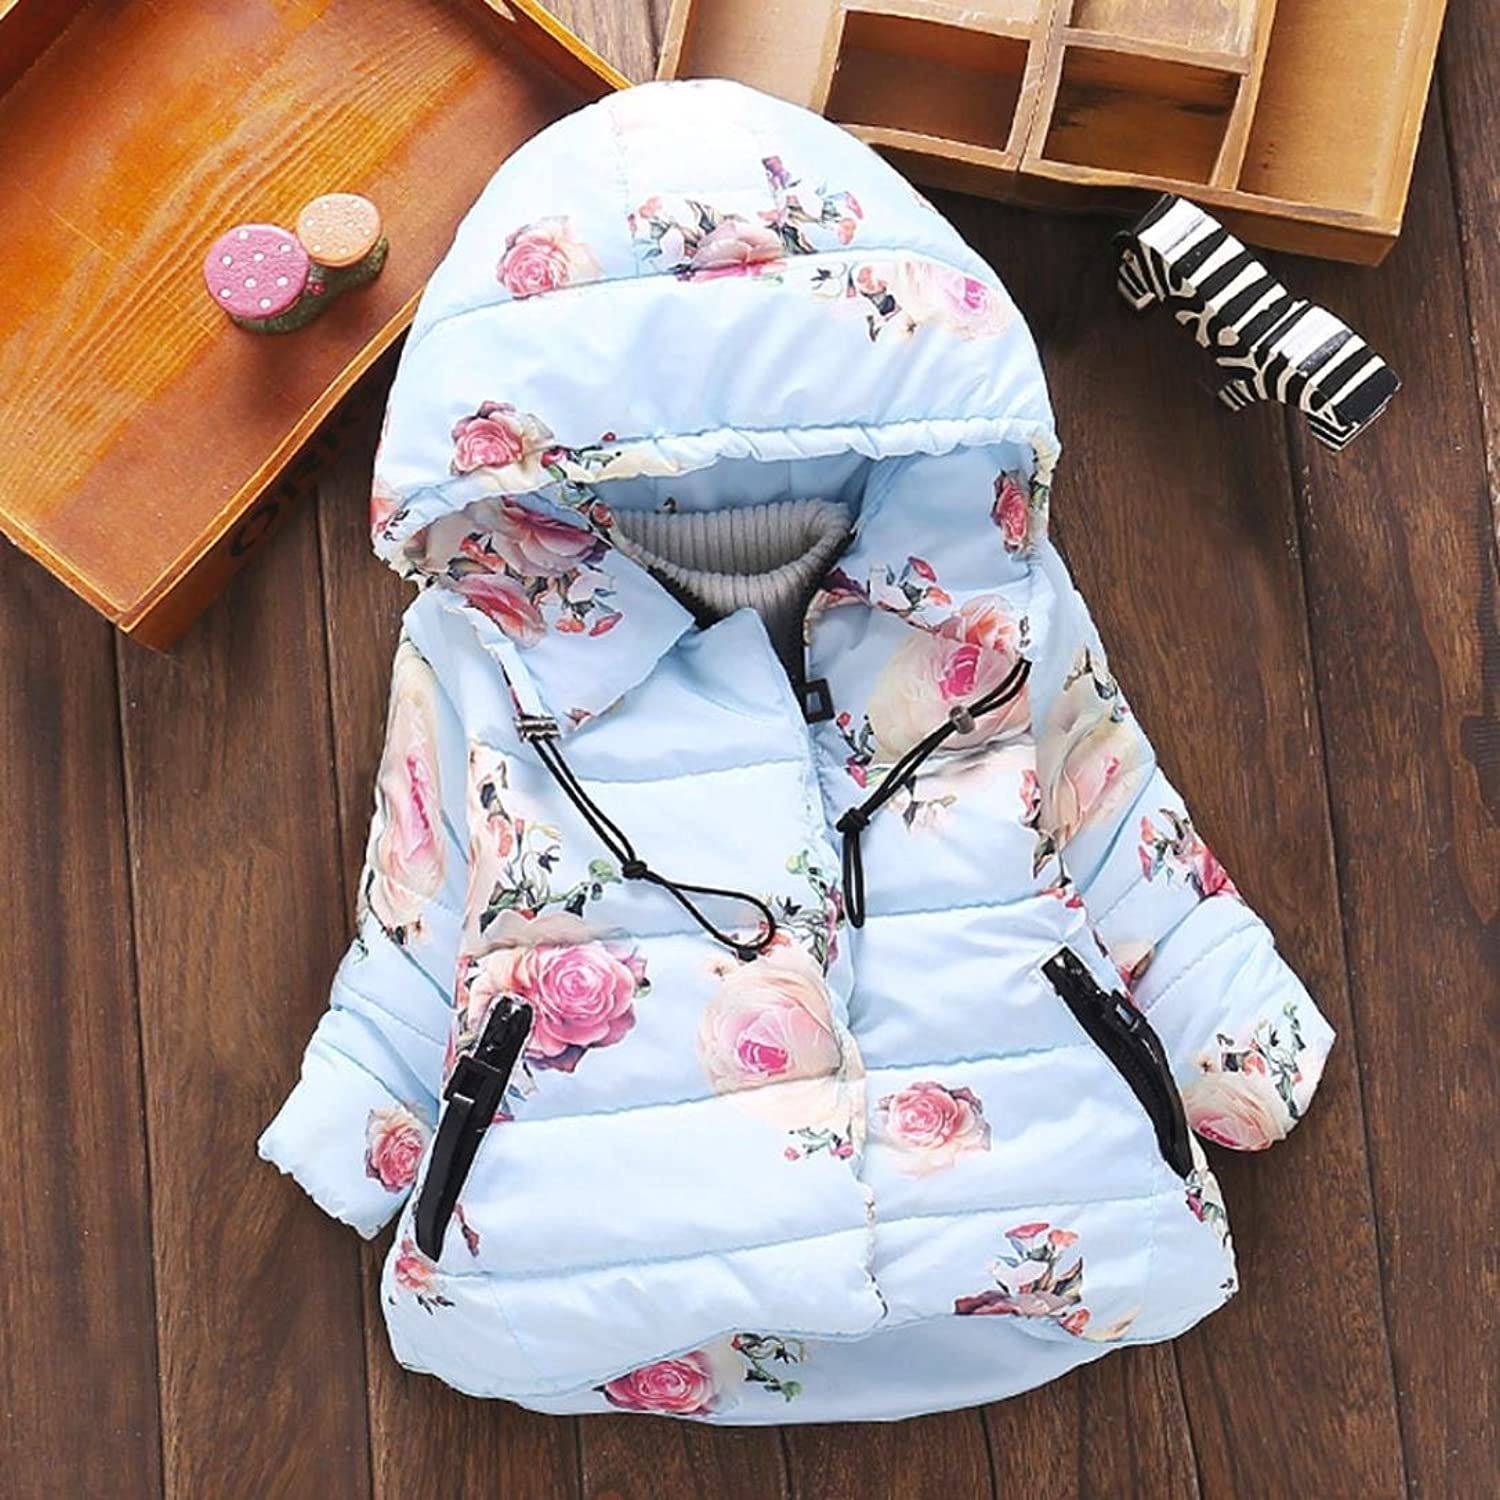 1-3 Years Old Baby Girls Coat, Ouneed Floral Warm Winter Tops Casual  Clothes Coat: Amazon.co.uk: Clothing